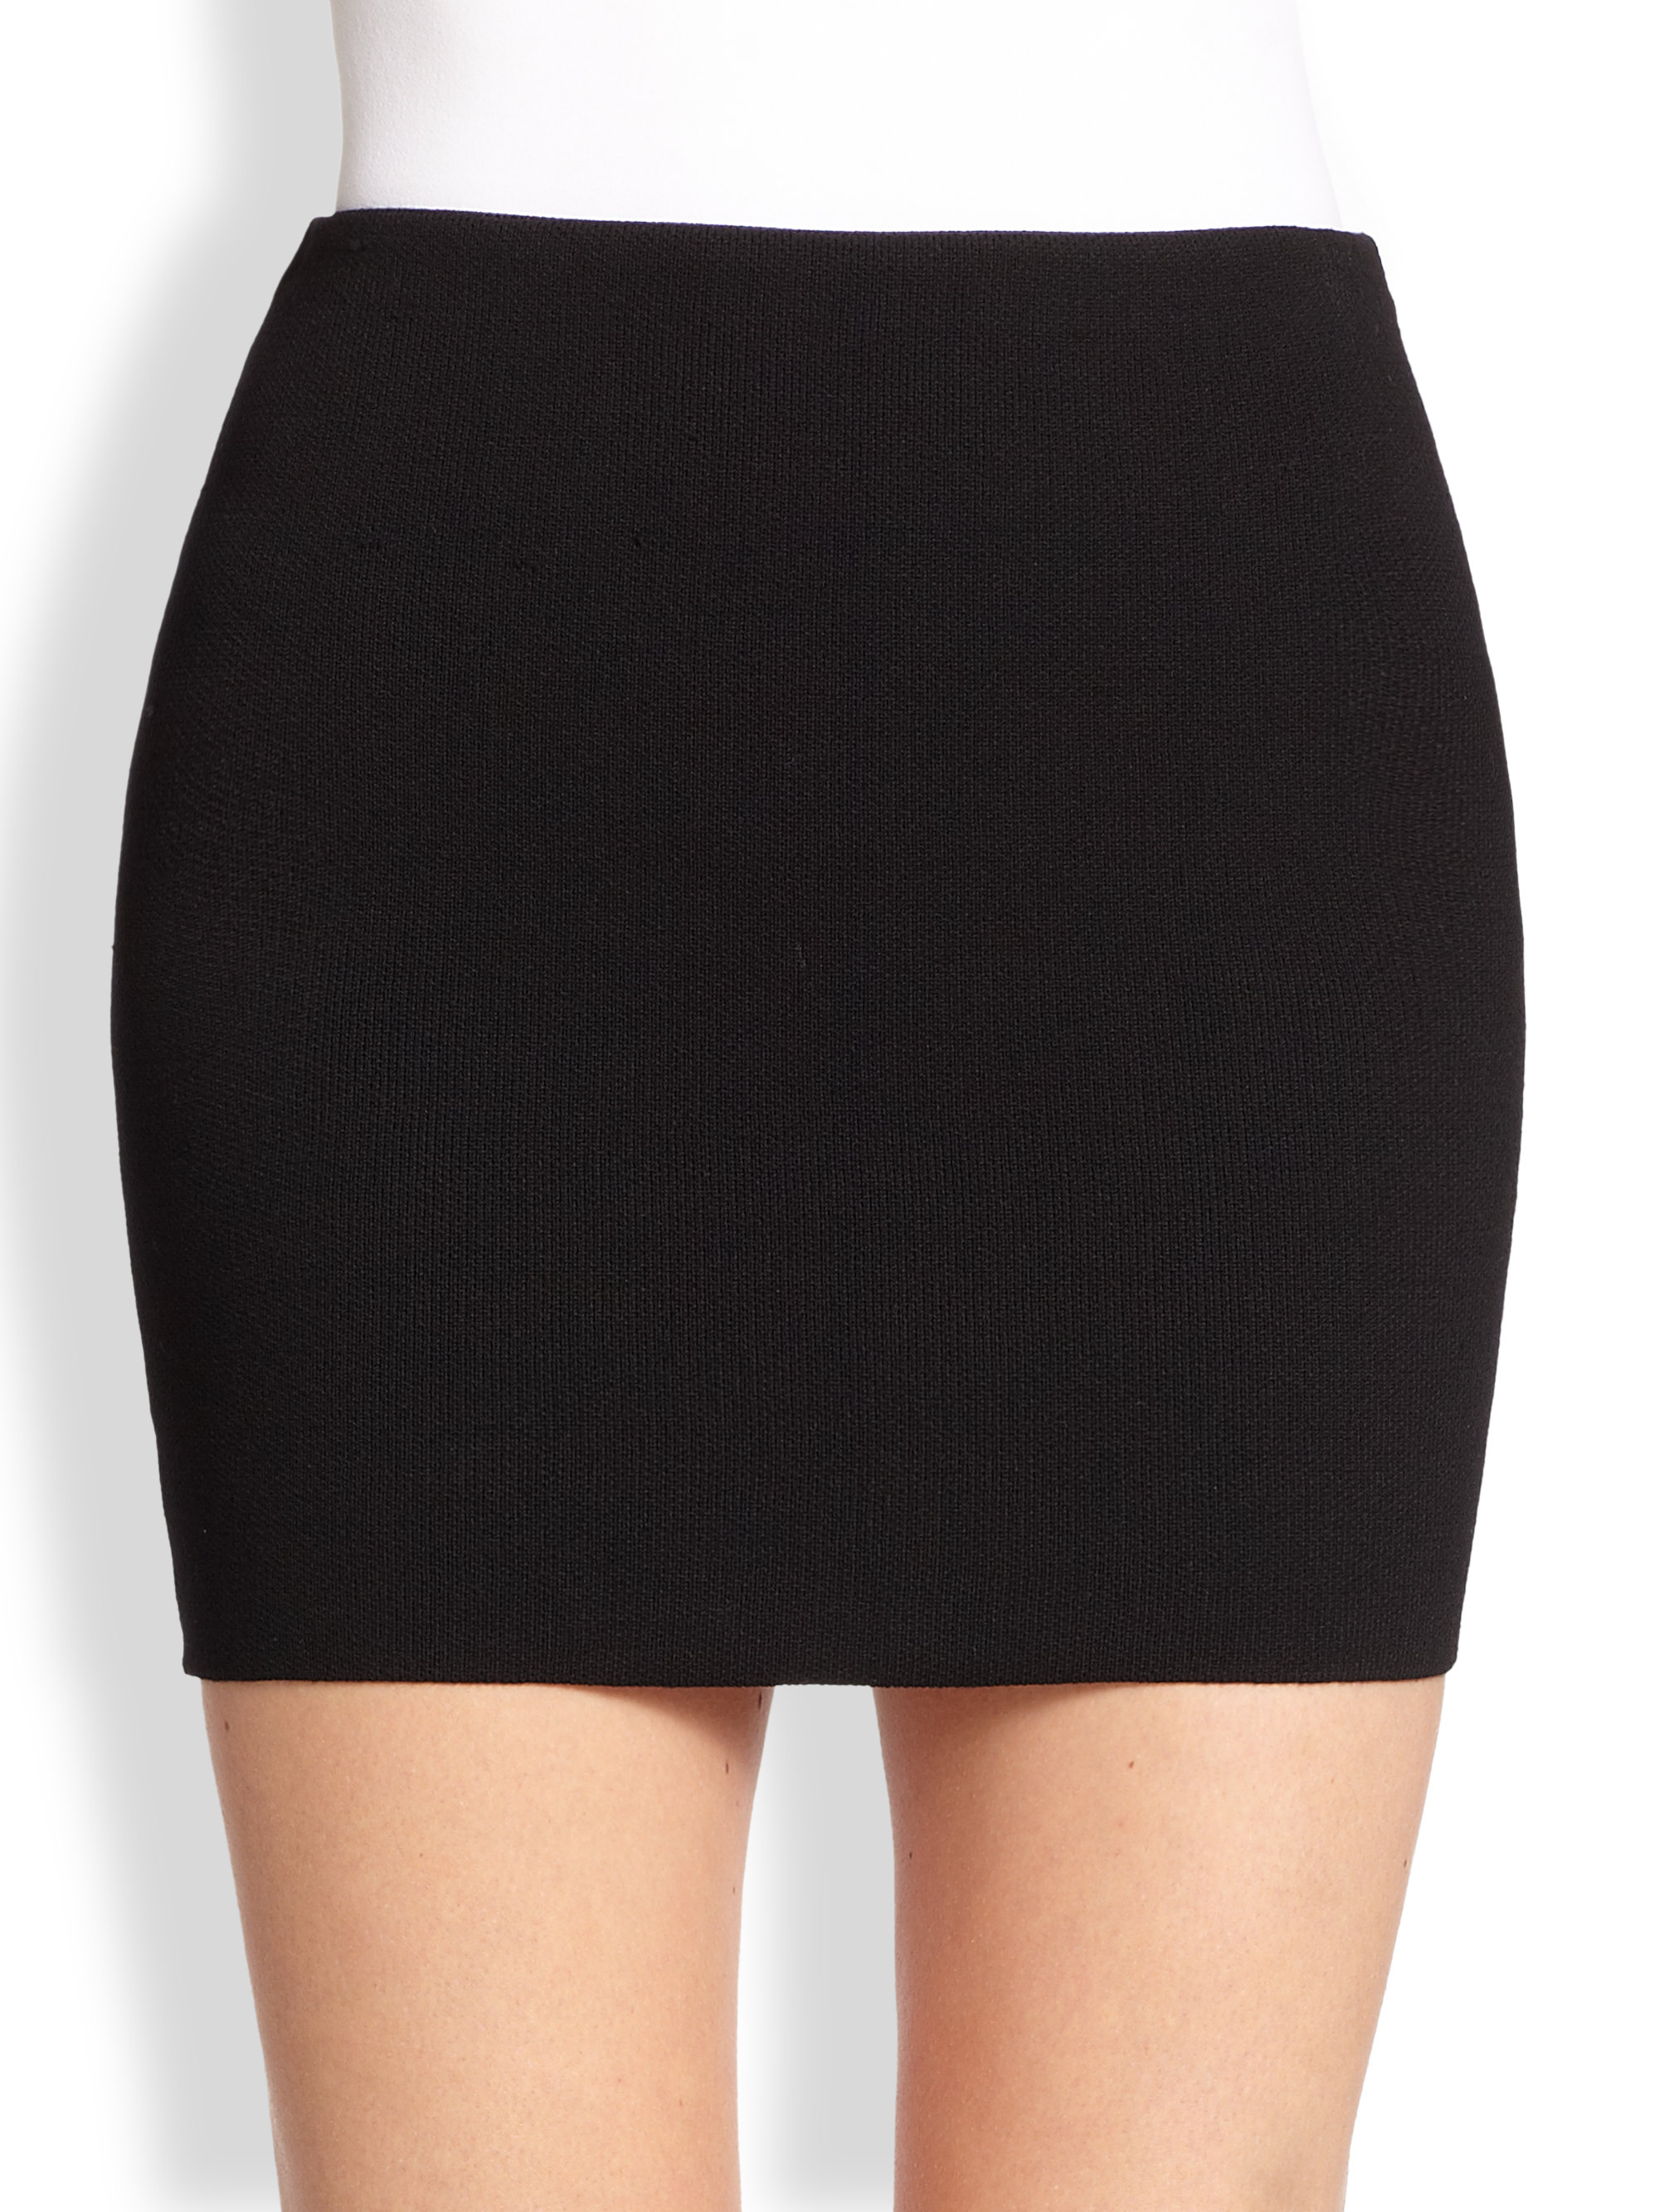 Find great deals on eBay for womens black knit skirt. Shop with confidence.